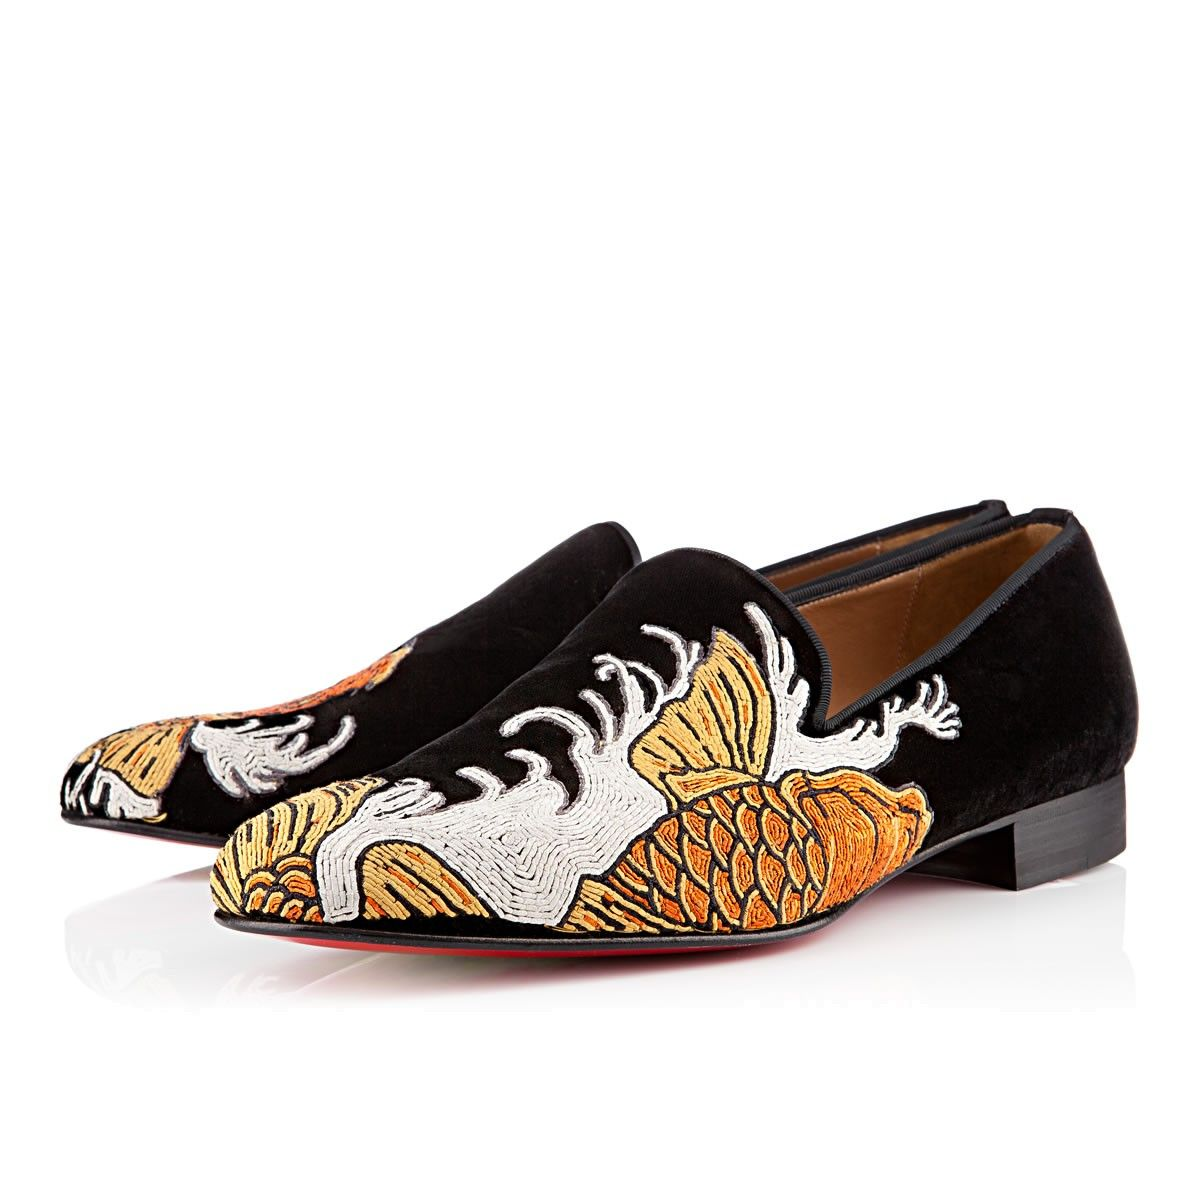 Men Shoes - Henri Tattoo Carp Flat - Christian Louboutin